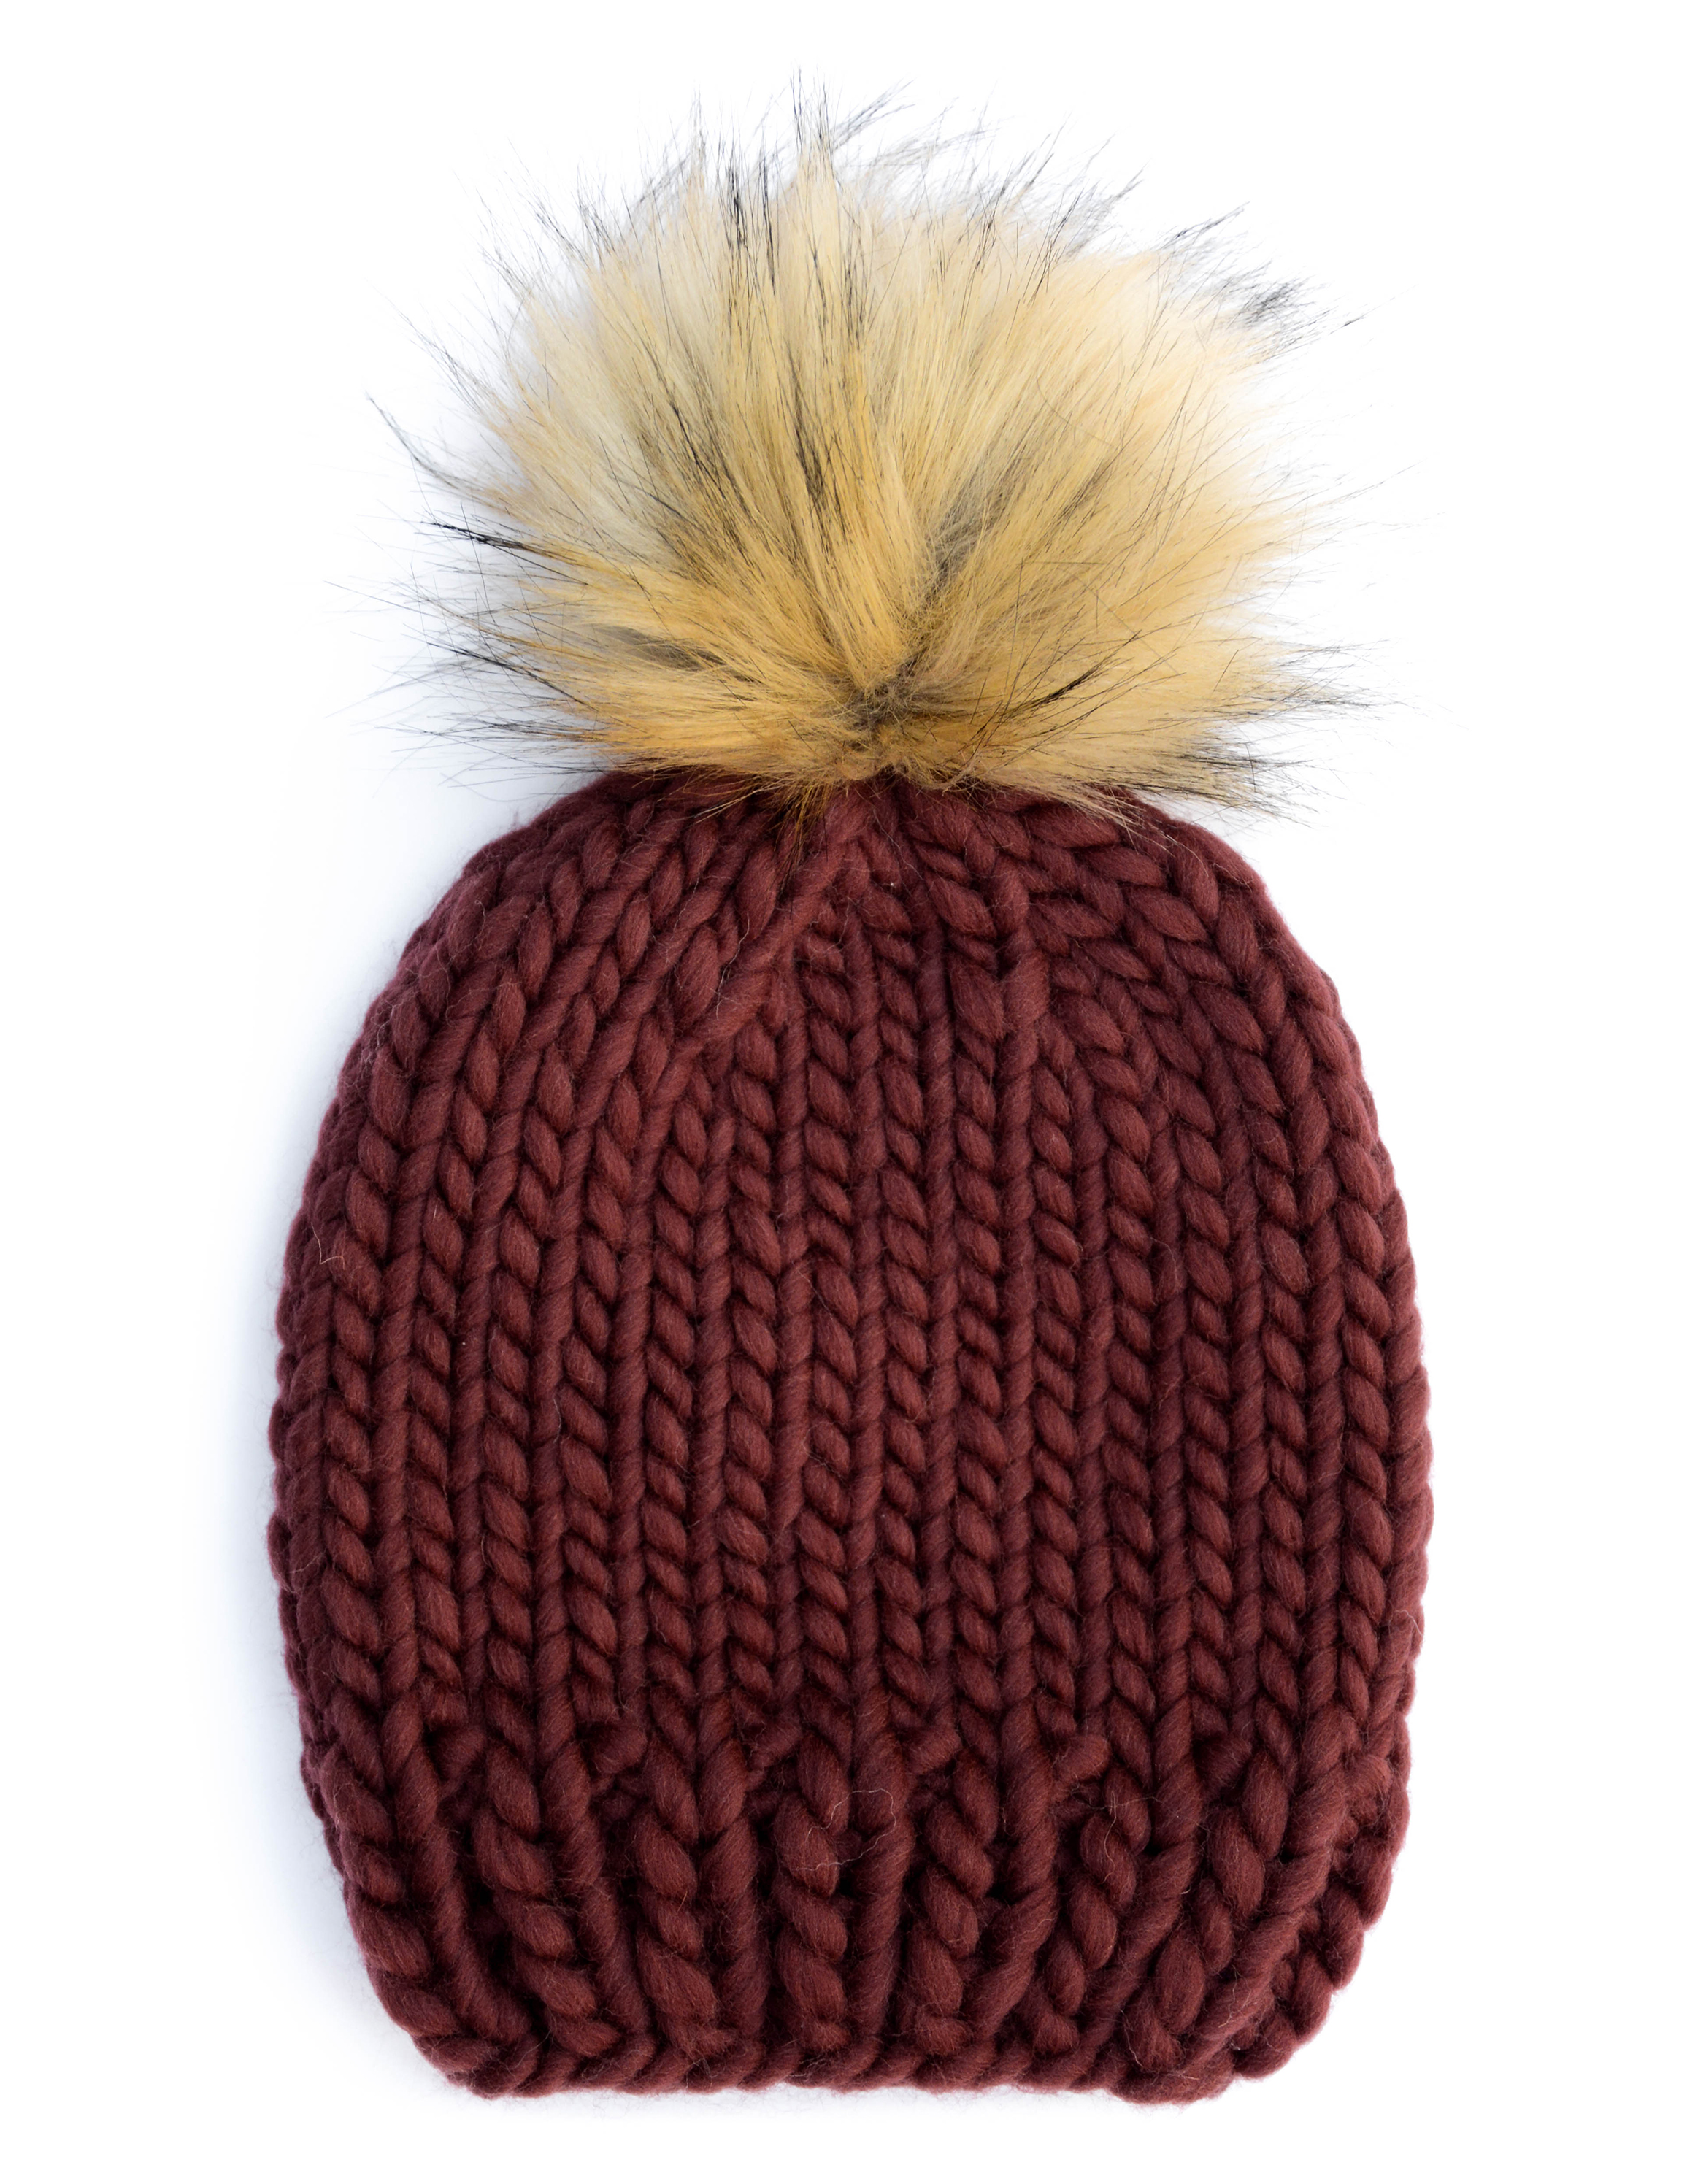 Handmade wool hats - Maroon bobble hat with a natural furry pom pom. Click  to 14459597d0e